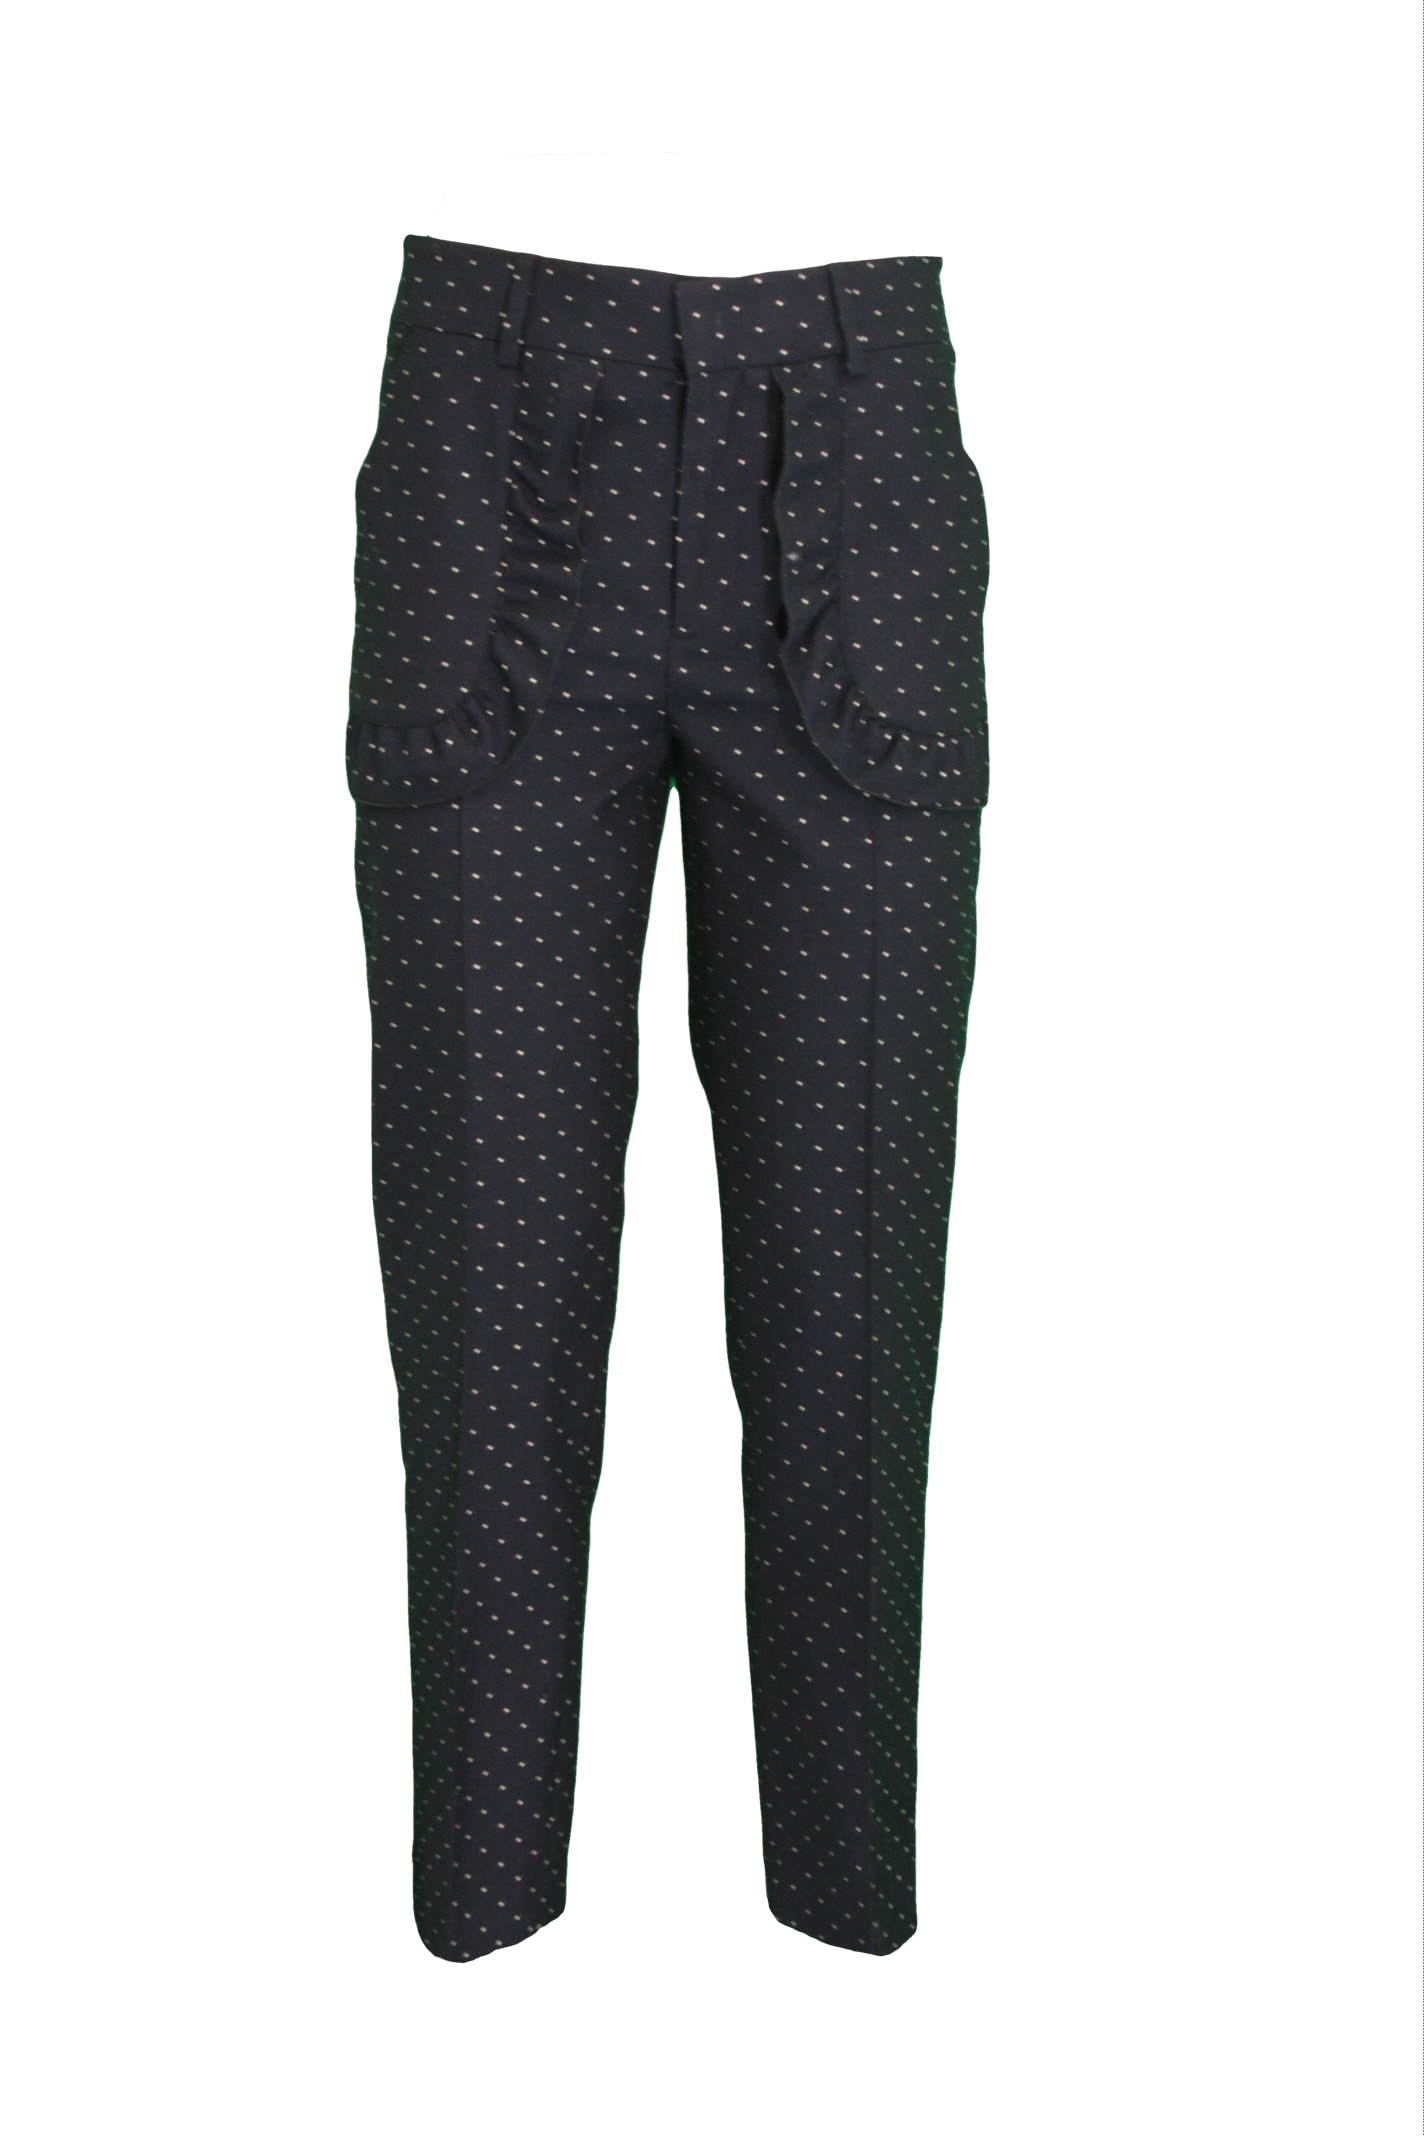 Red Valentino Straight pants COTTON-WOOL BLEND TROUSERS